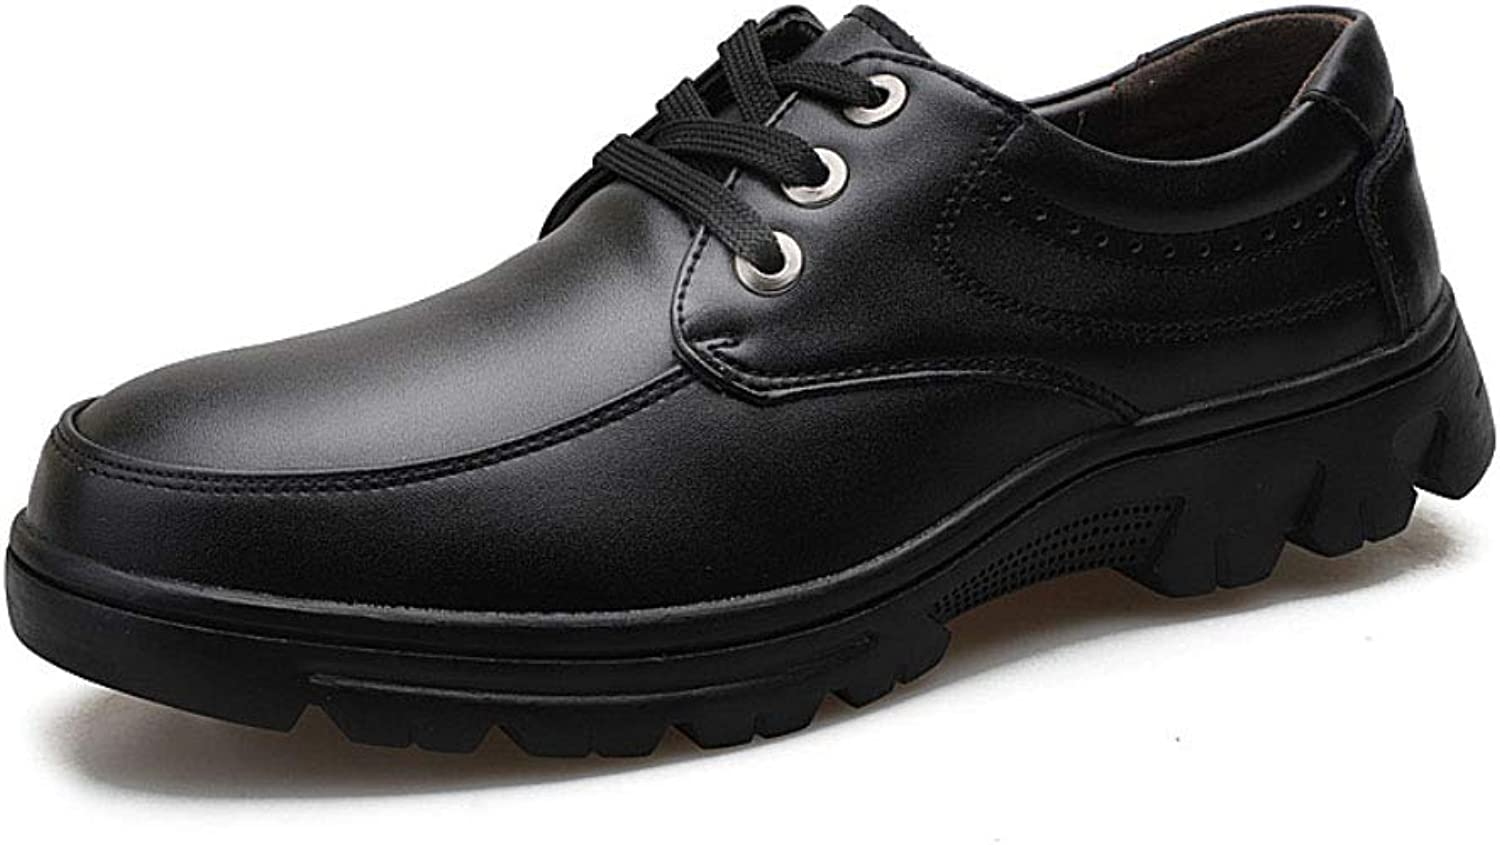 Leather shoes, Business Leather Casual Men's shoes, Handmade, Large Size shoes, lace-up shoes, Thick Soles